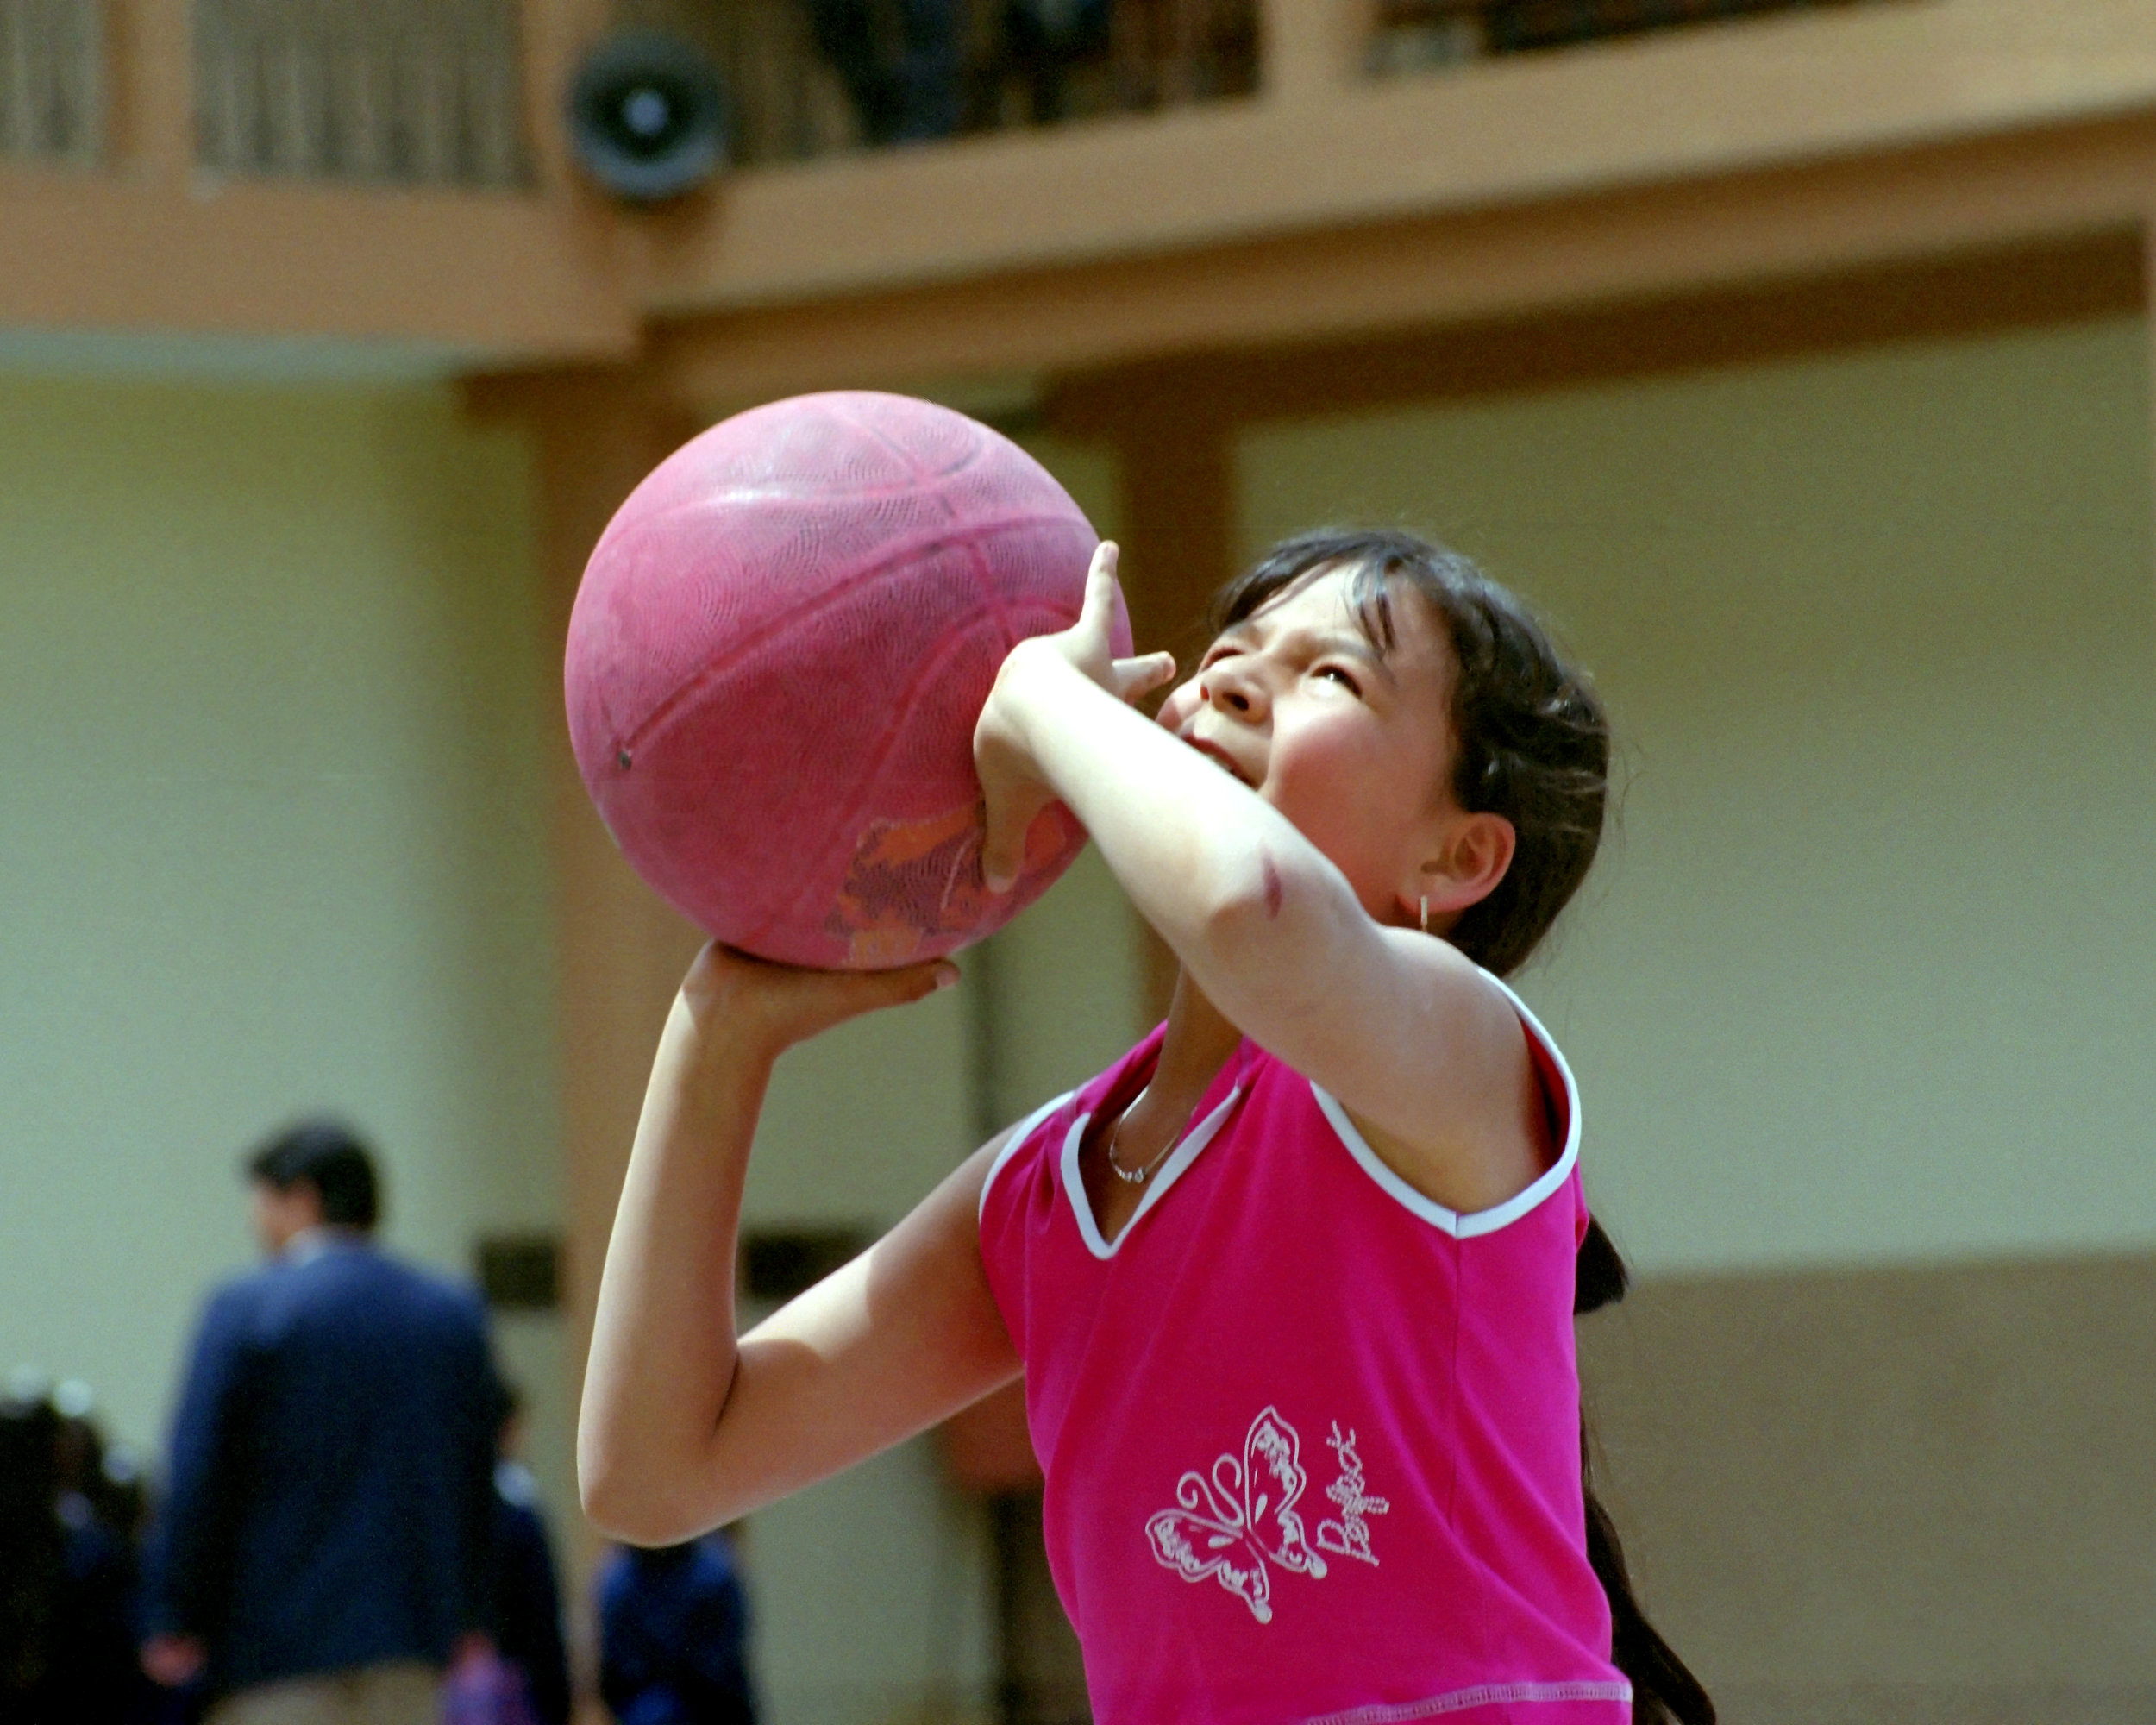 PinkBall-149RT16x20H.jpg